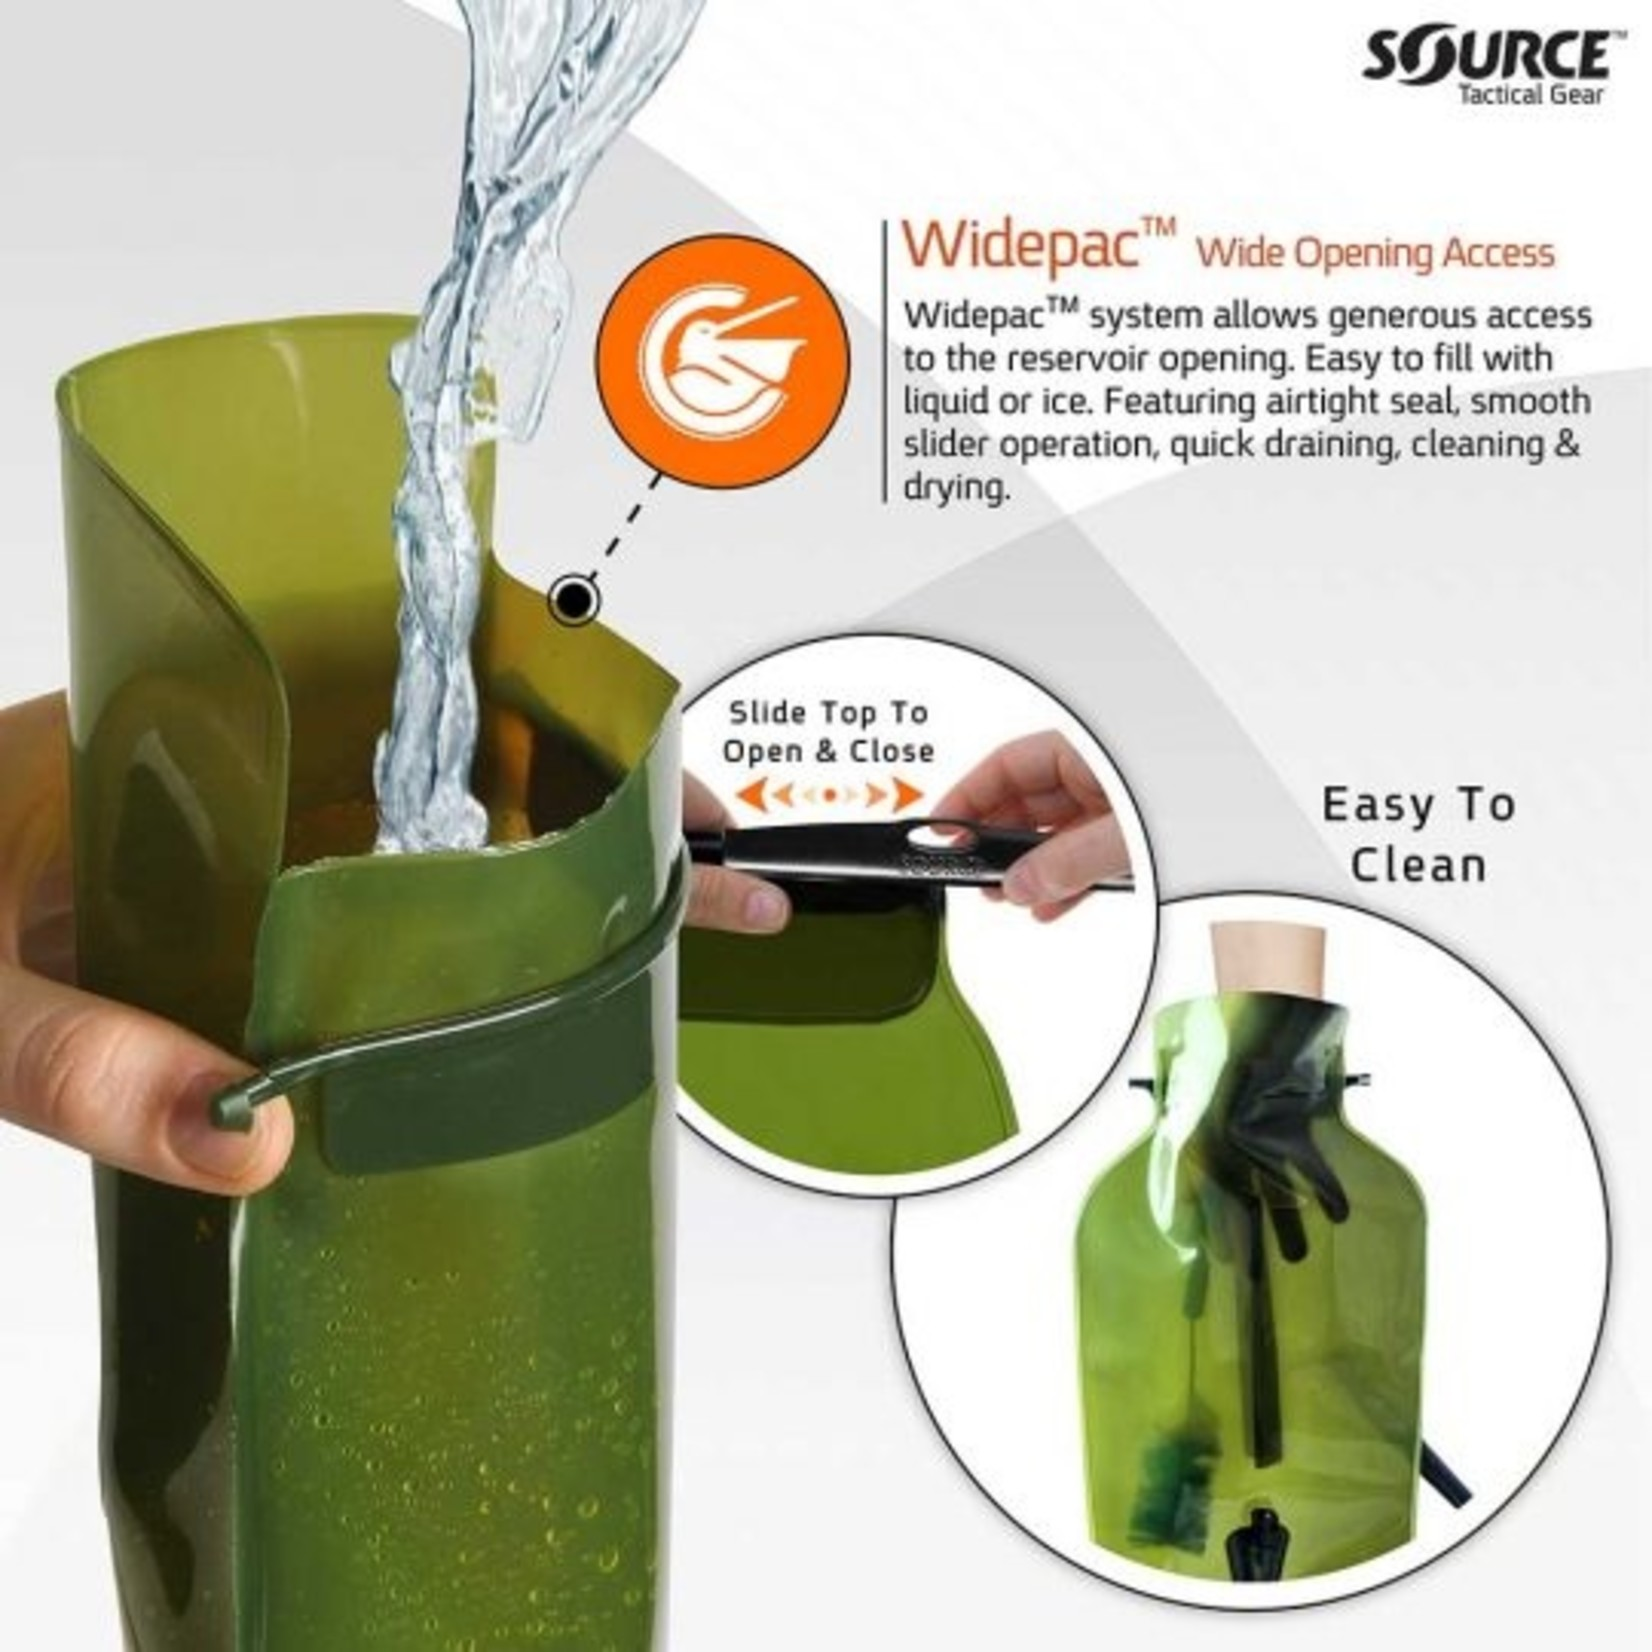 SOURCE TACTICAL GEAR WLPS 3L LOW PROFILE HYDRATION SYSTEM